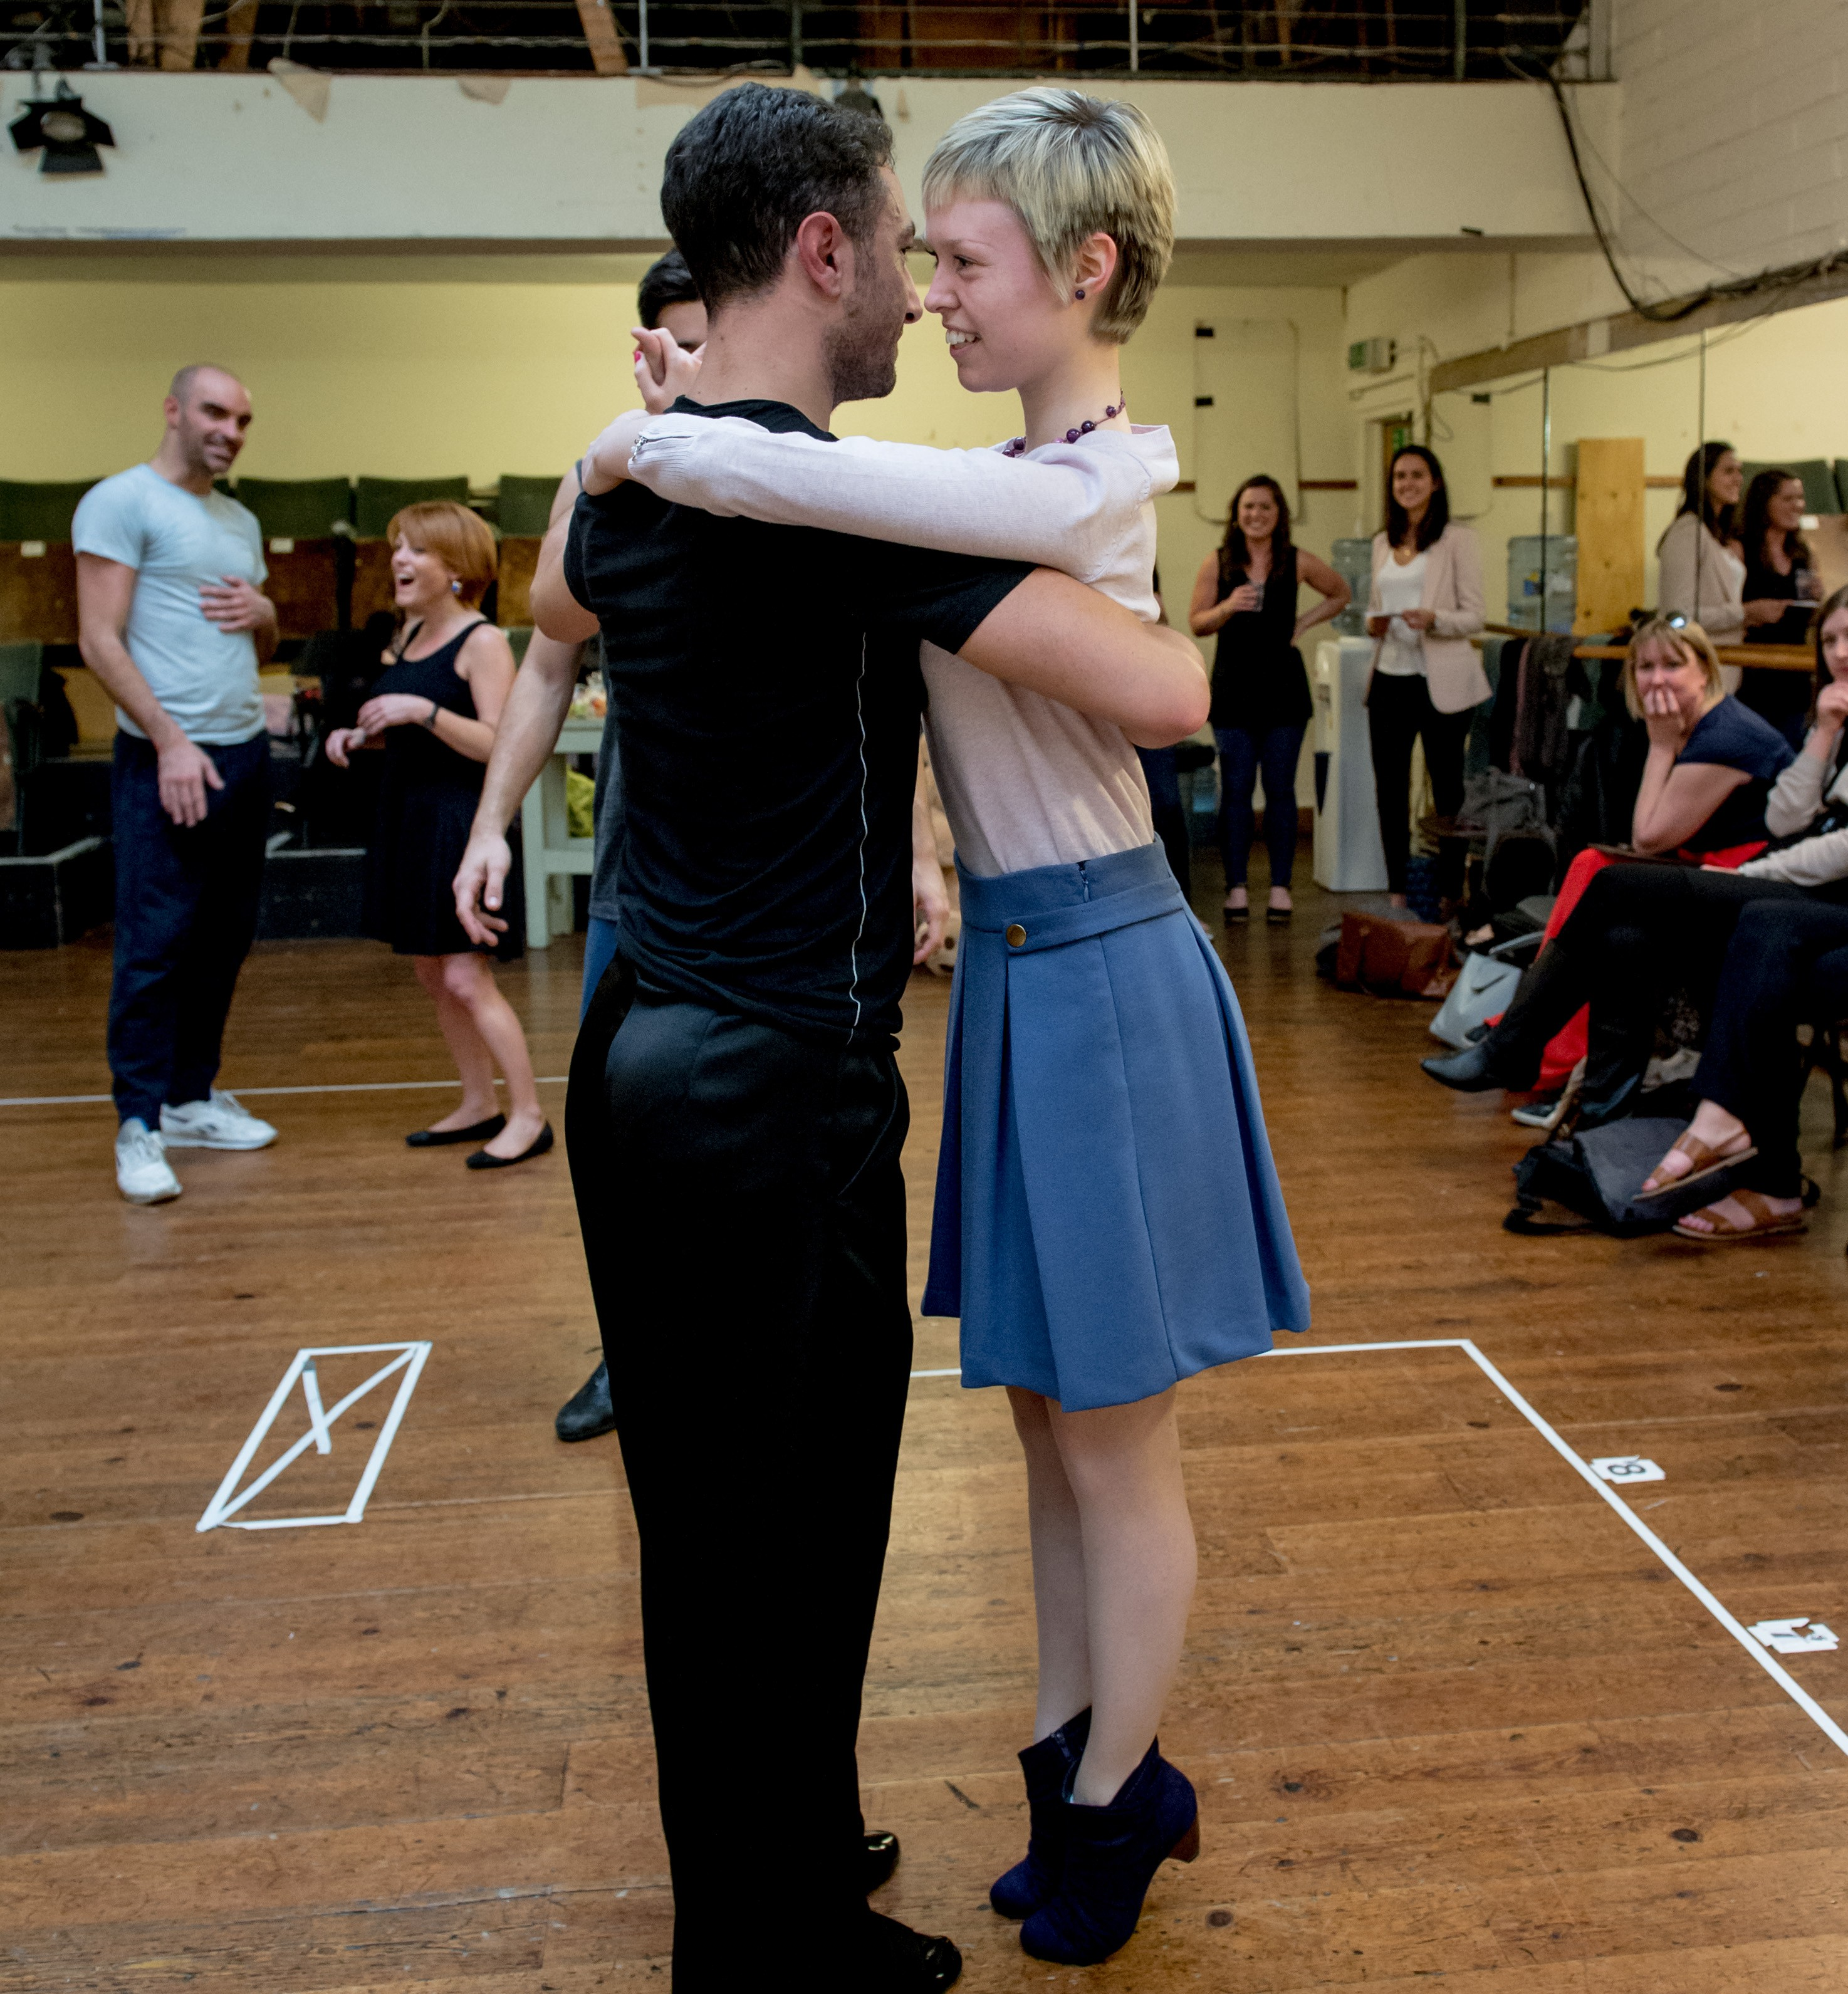 Rehearsals with Vincent Simon and Flavia Cacace. Vincent dances with Georgina Butler.